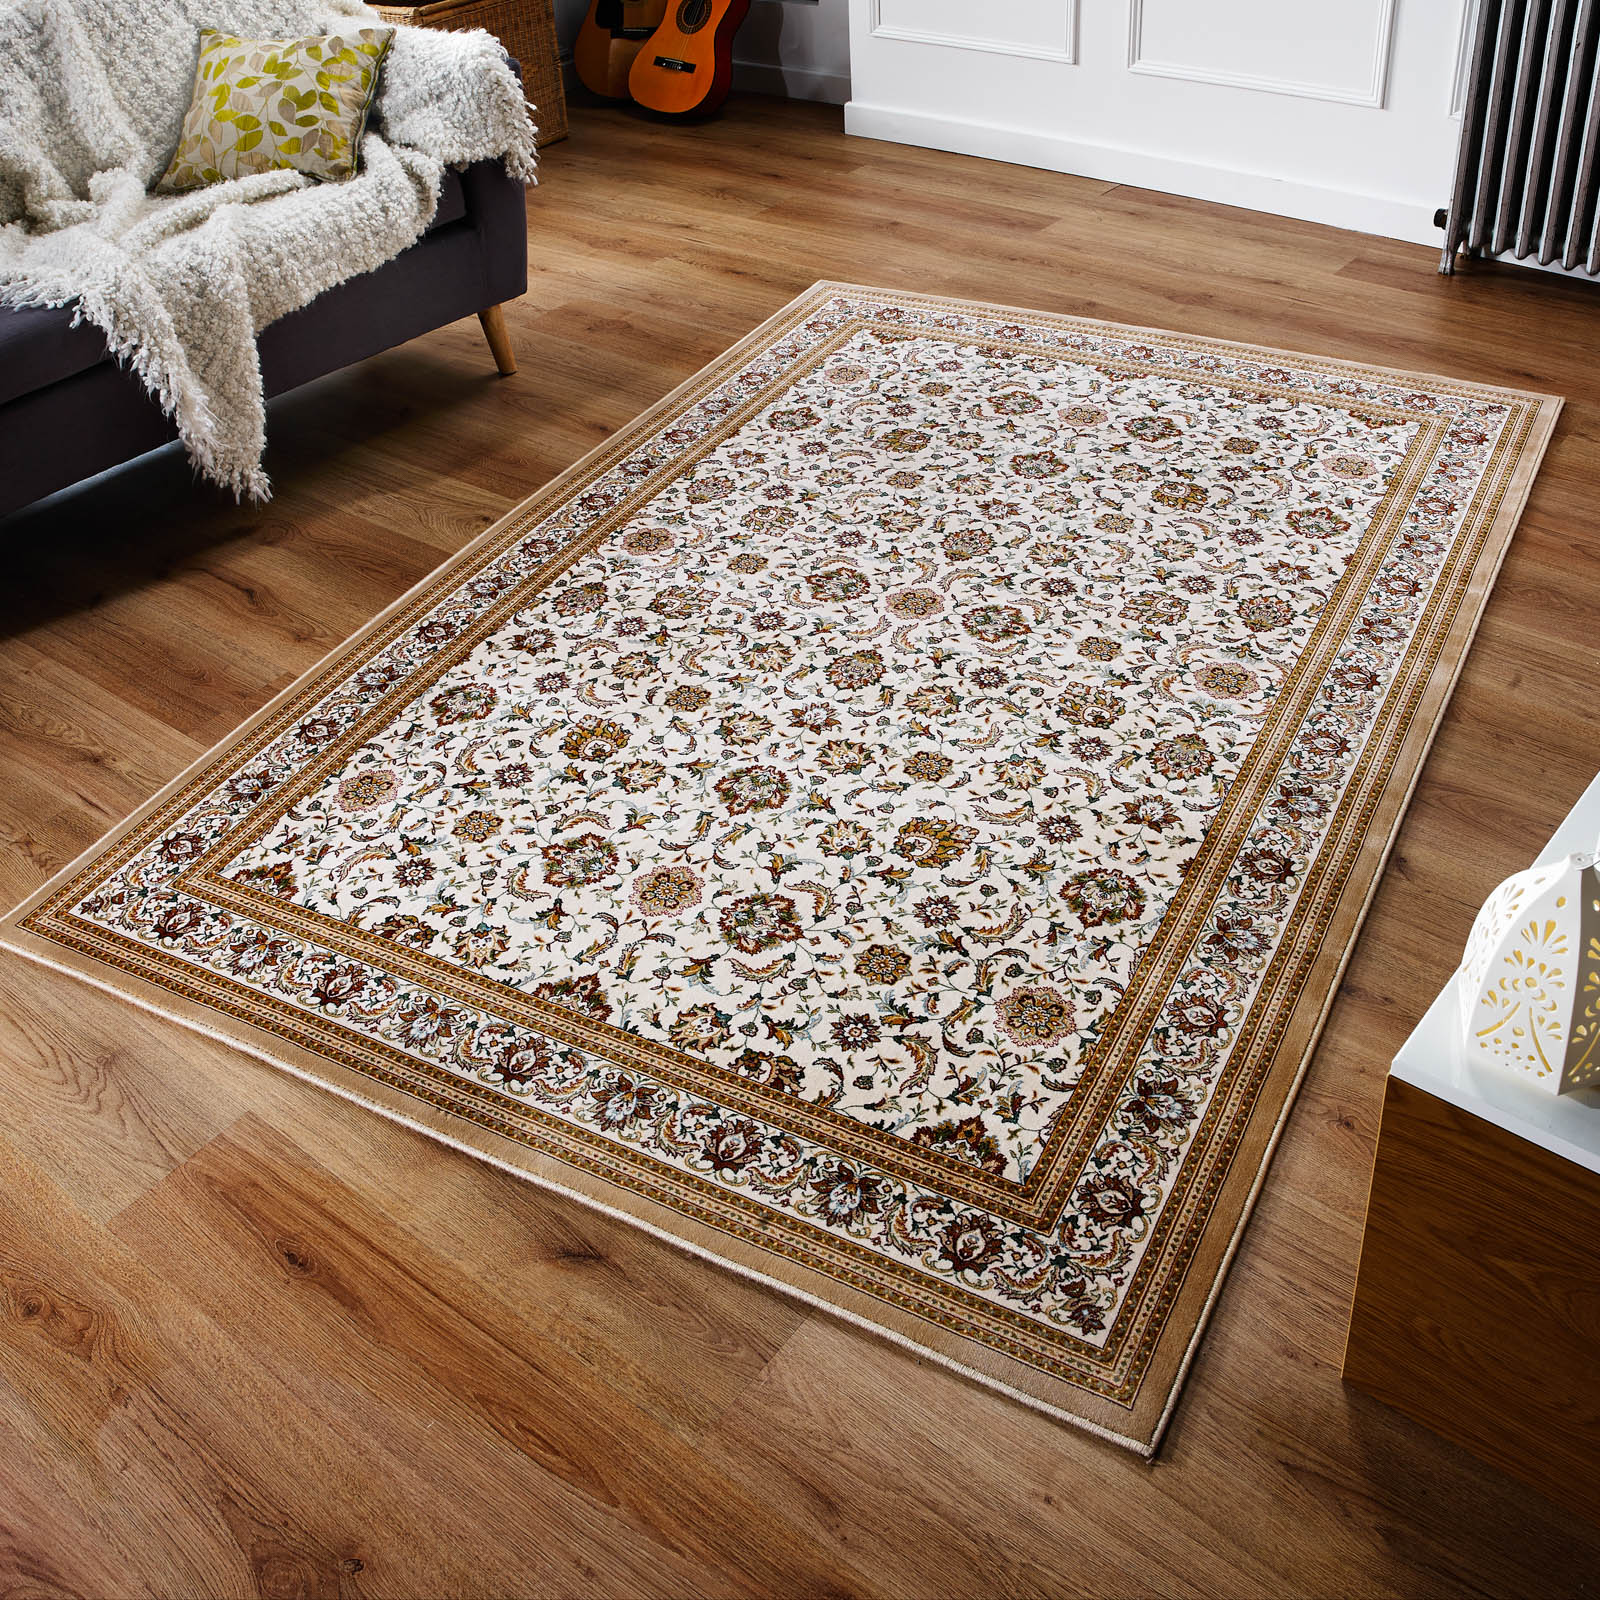 Royal Palace Rugs 501J